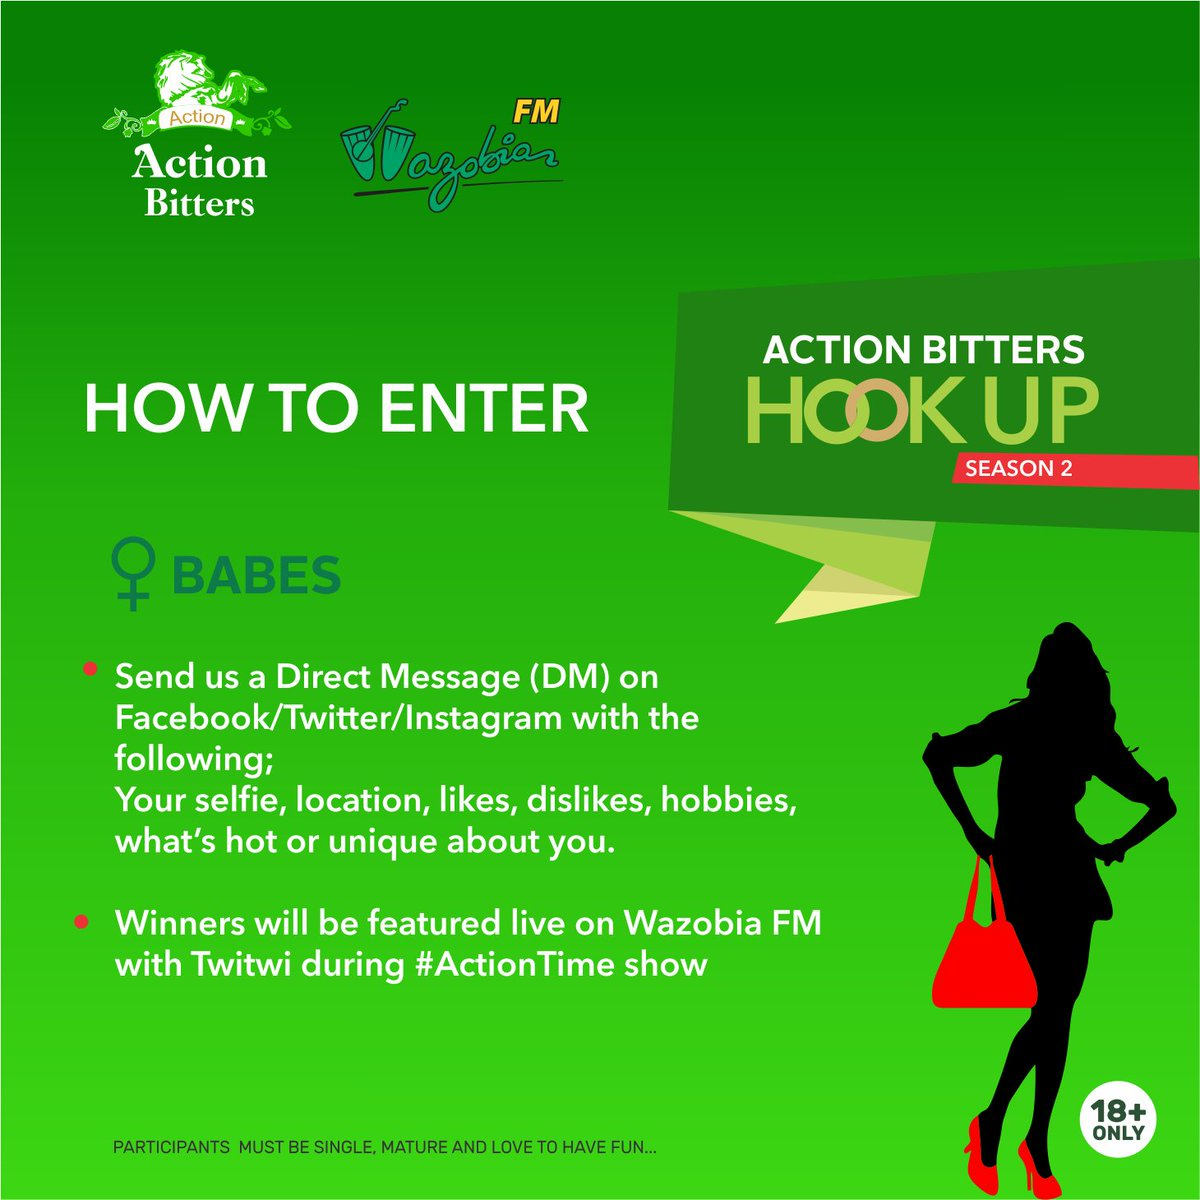 How to delete cool fm hookup profile